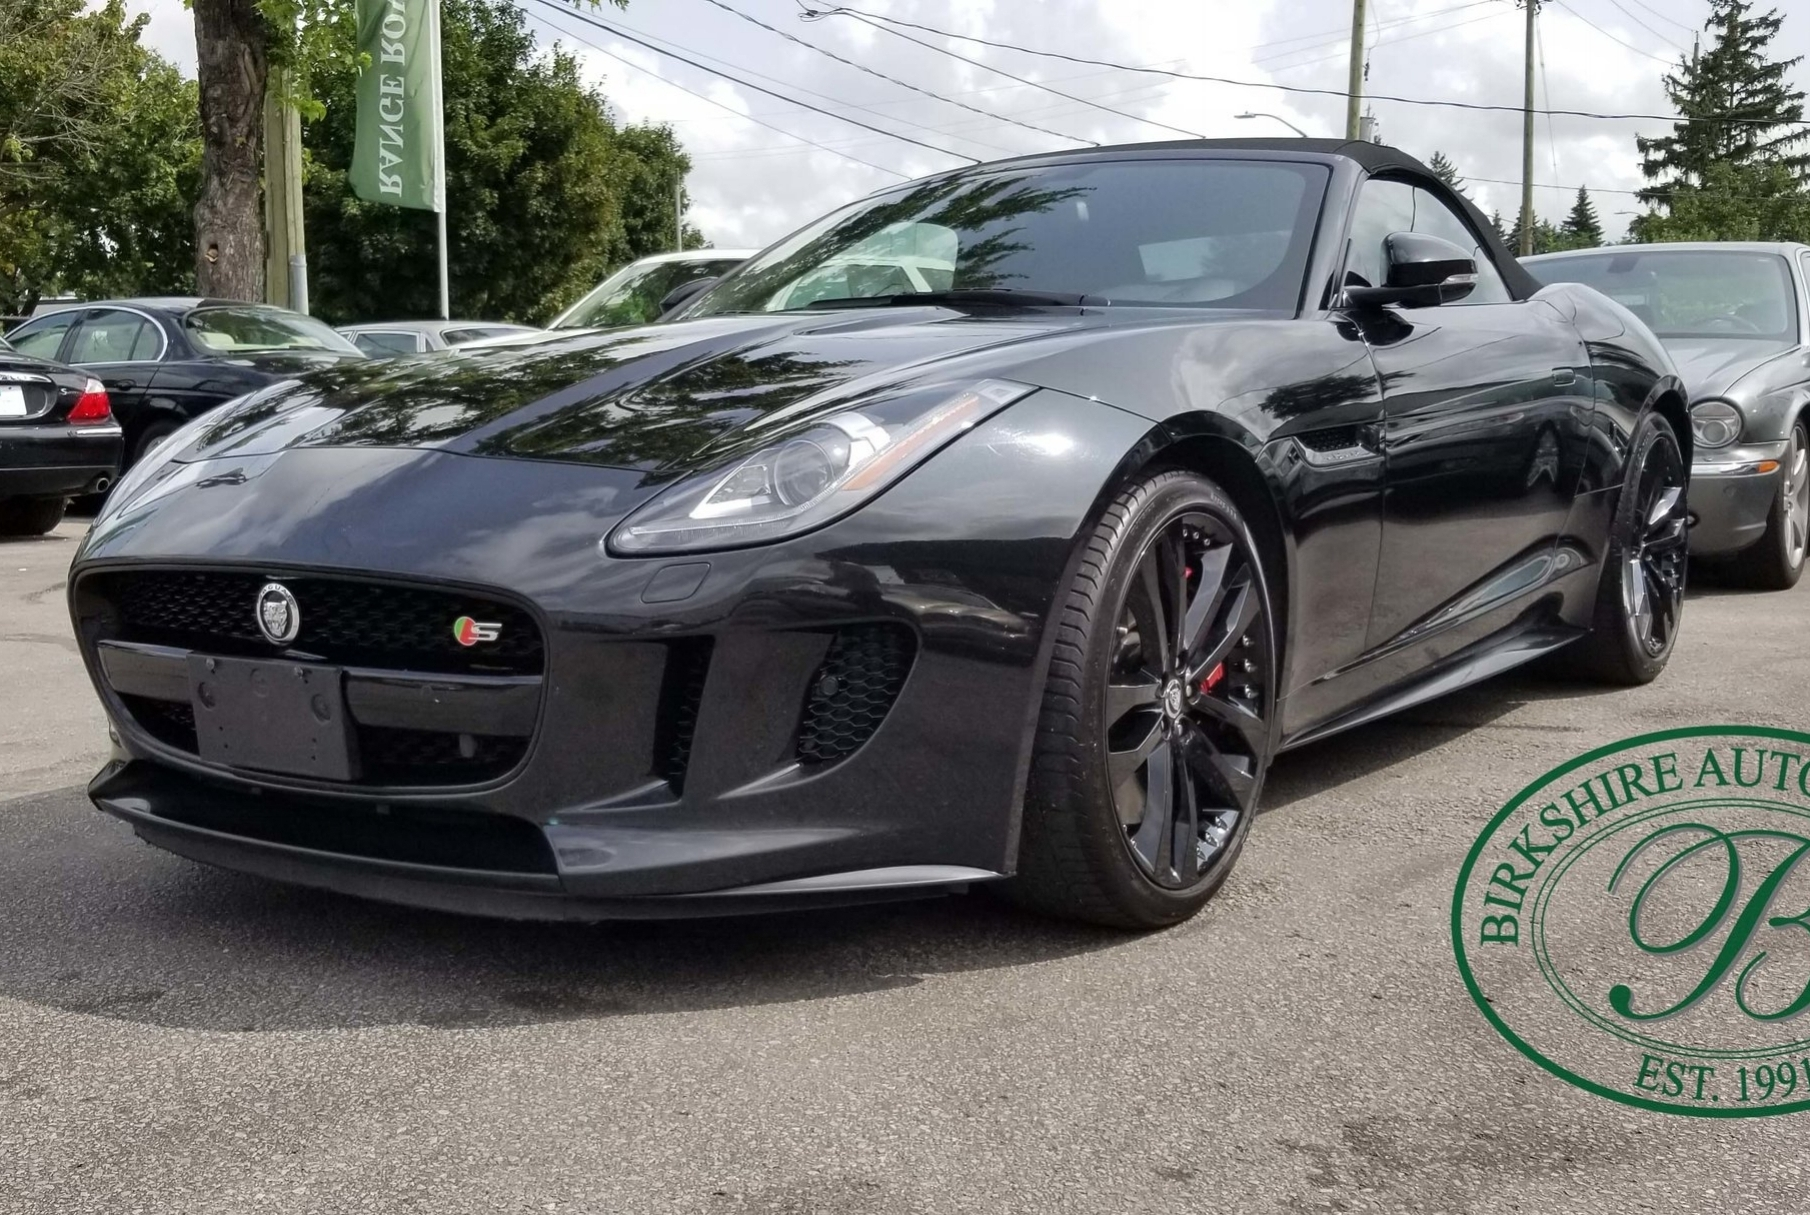 2014 Jaguar F-Type V8 S - If you're new to the marque, consult a Jaguar specialist like us and search for the finest example your wallet will allow - you will be rewarded as only a Jaguar can do.